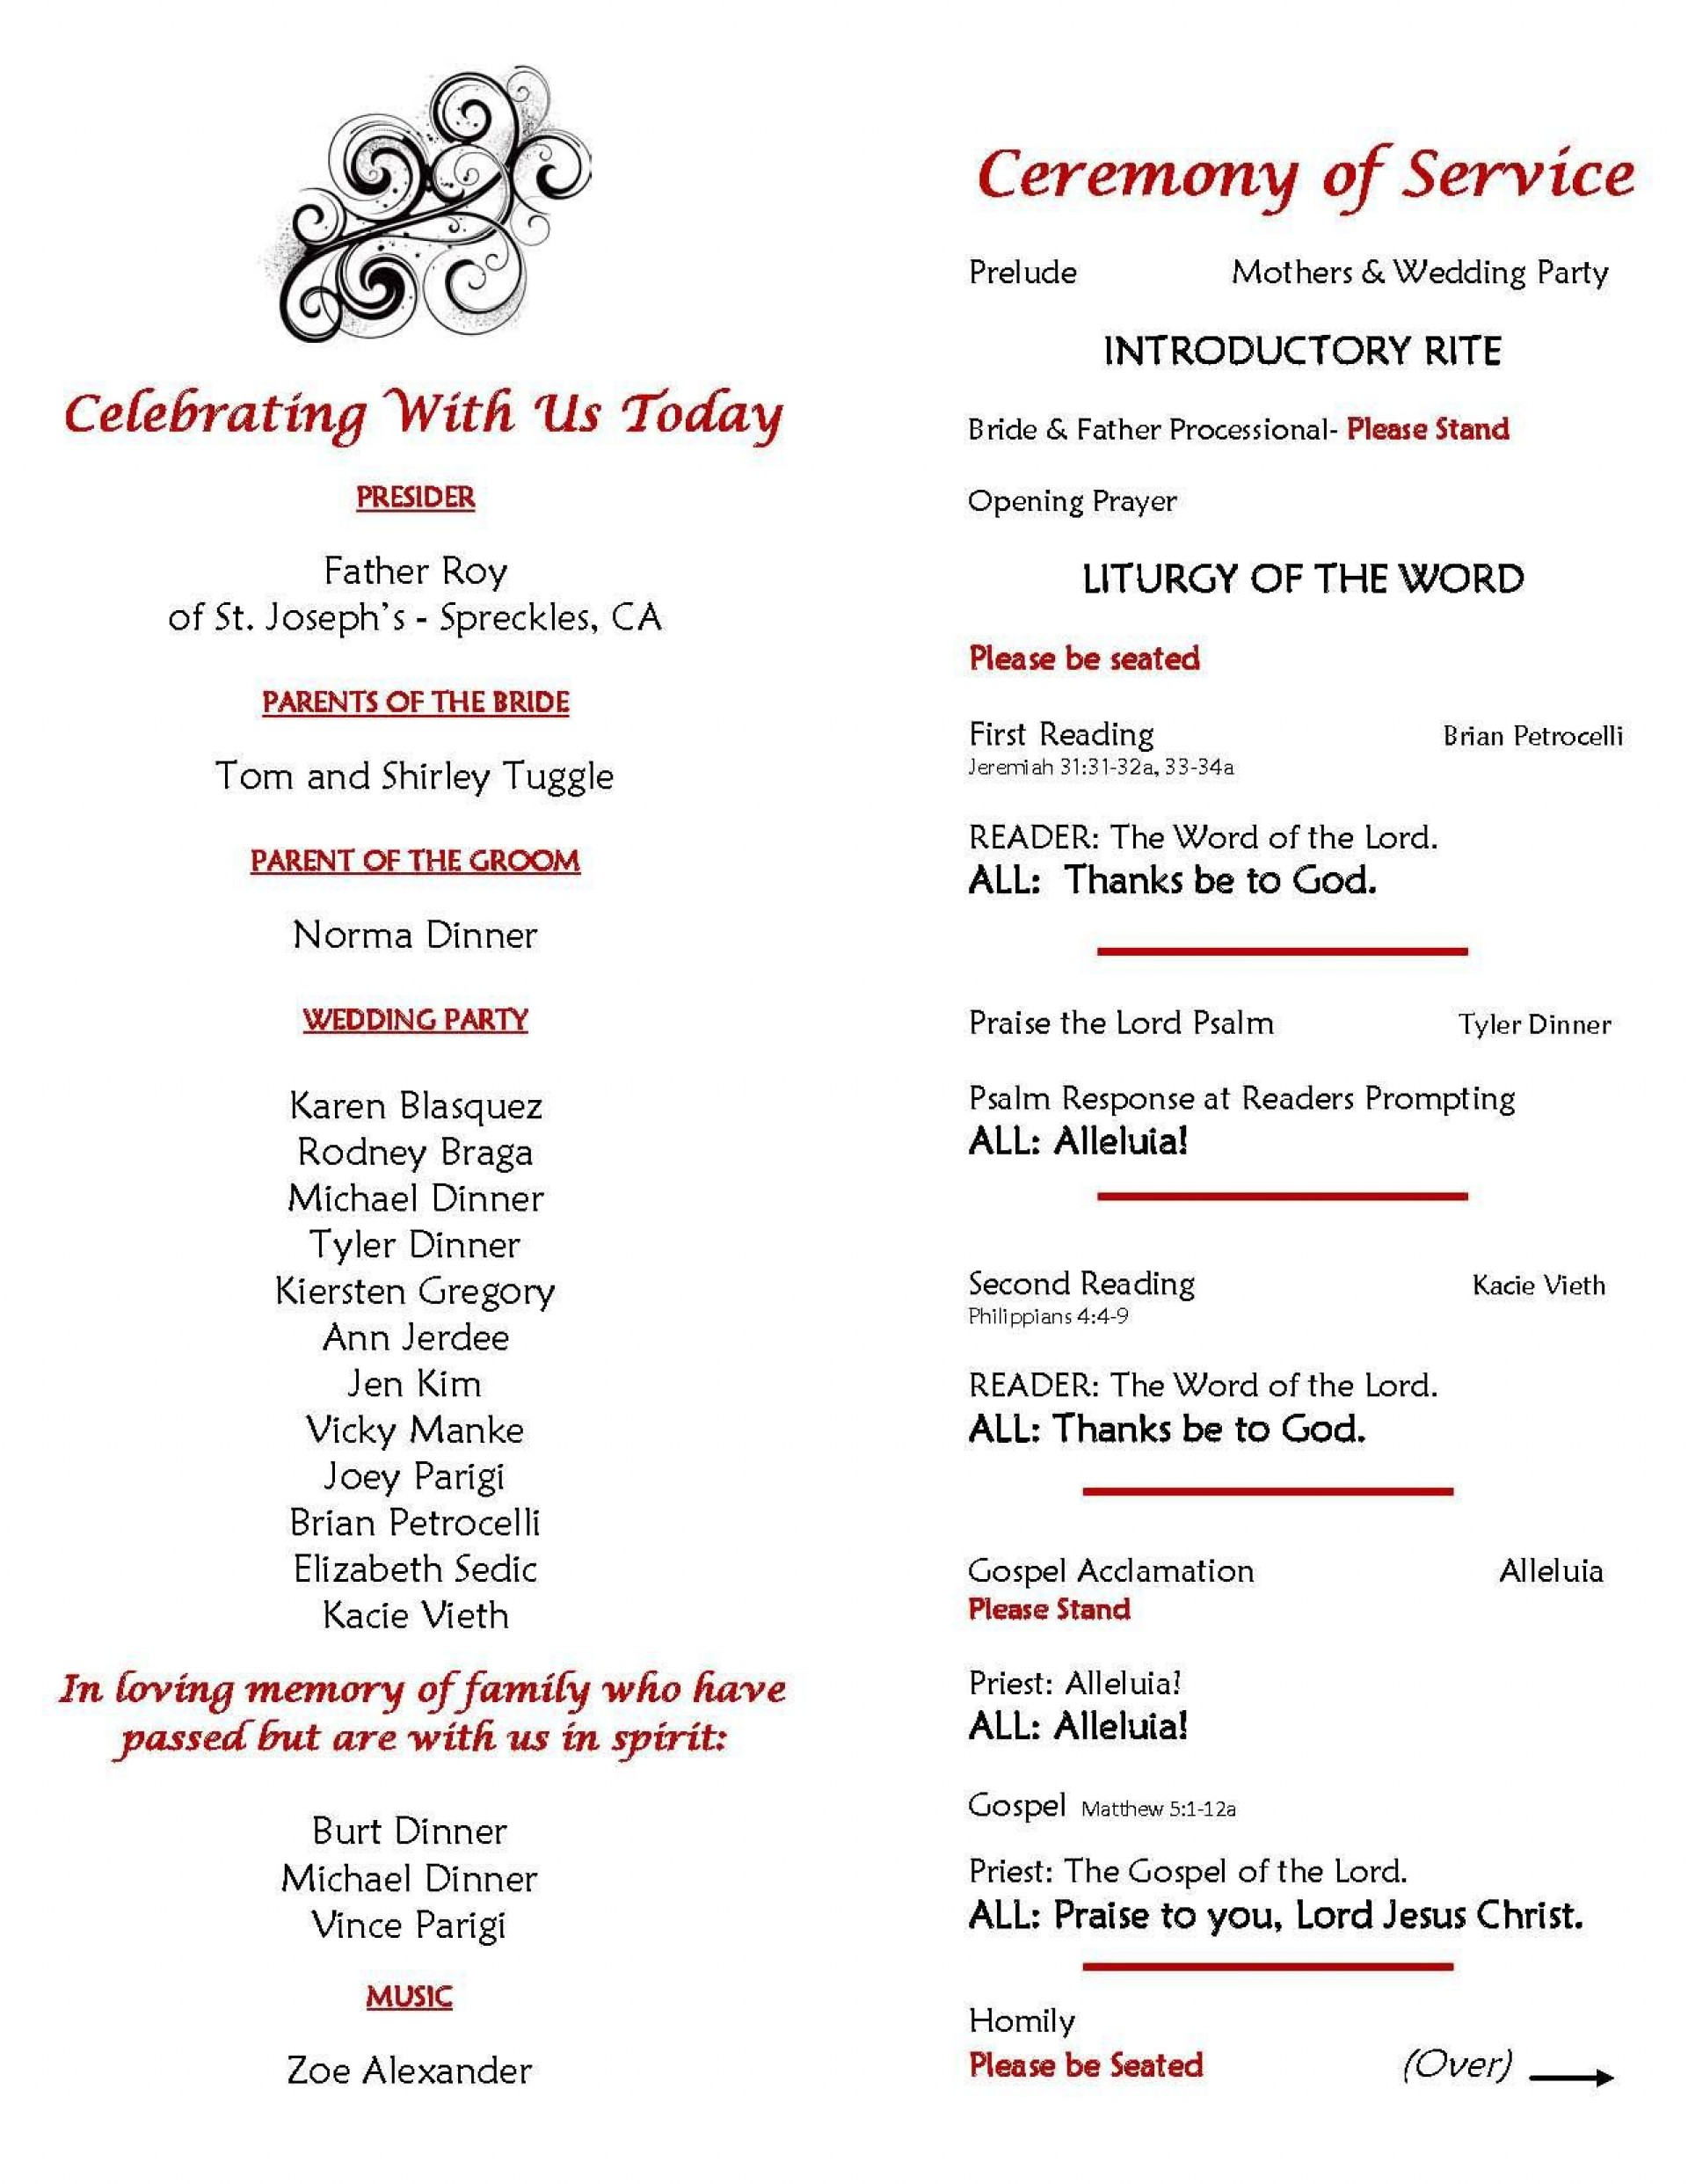 Ceremony Program Template from www.addictionary.org